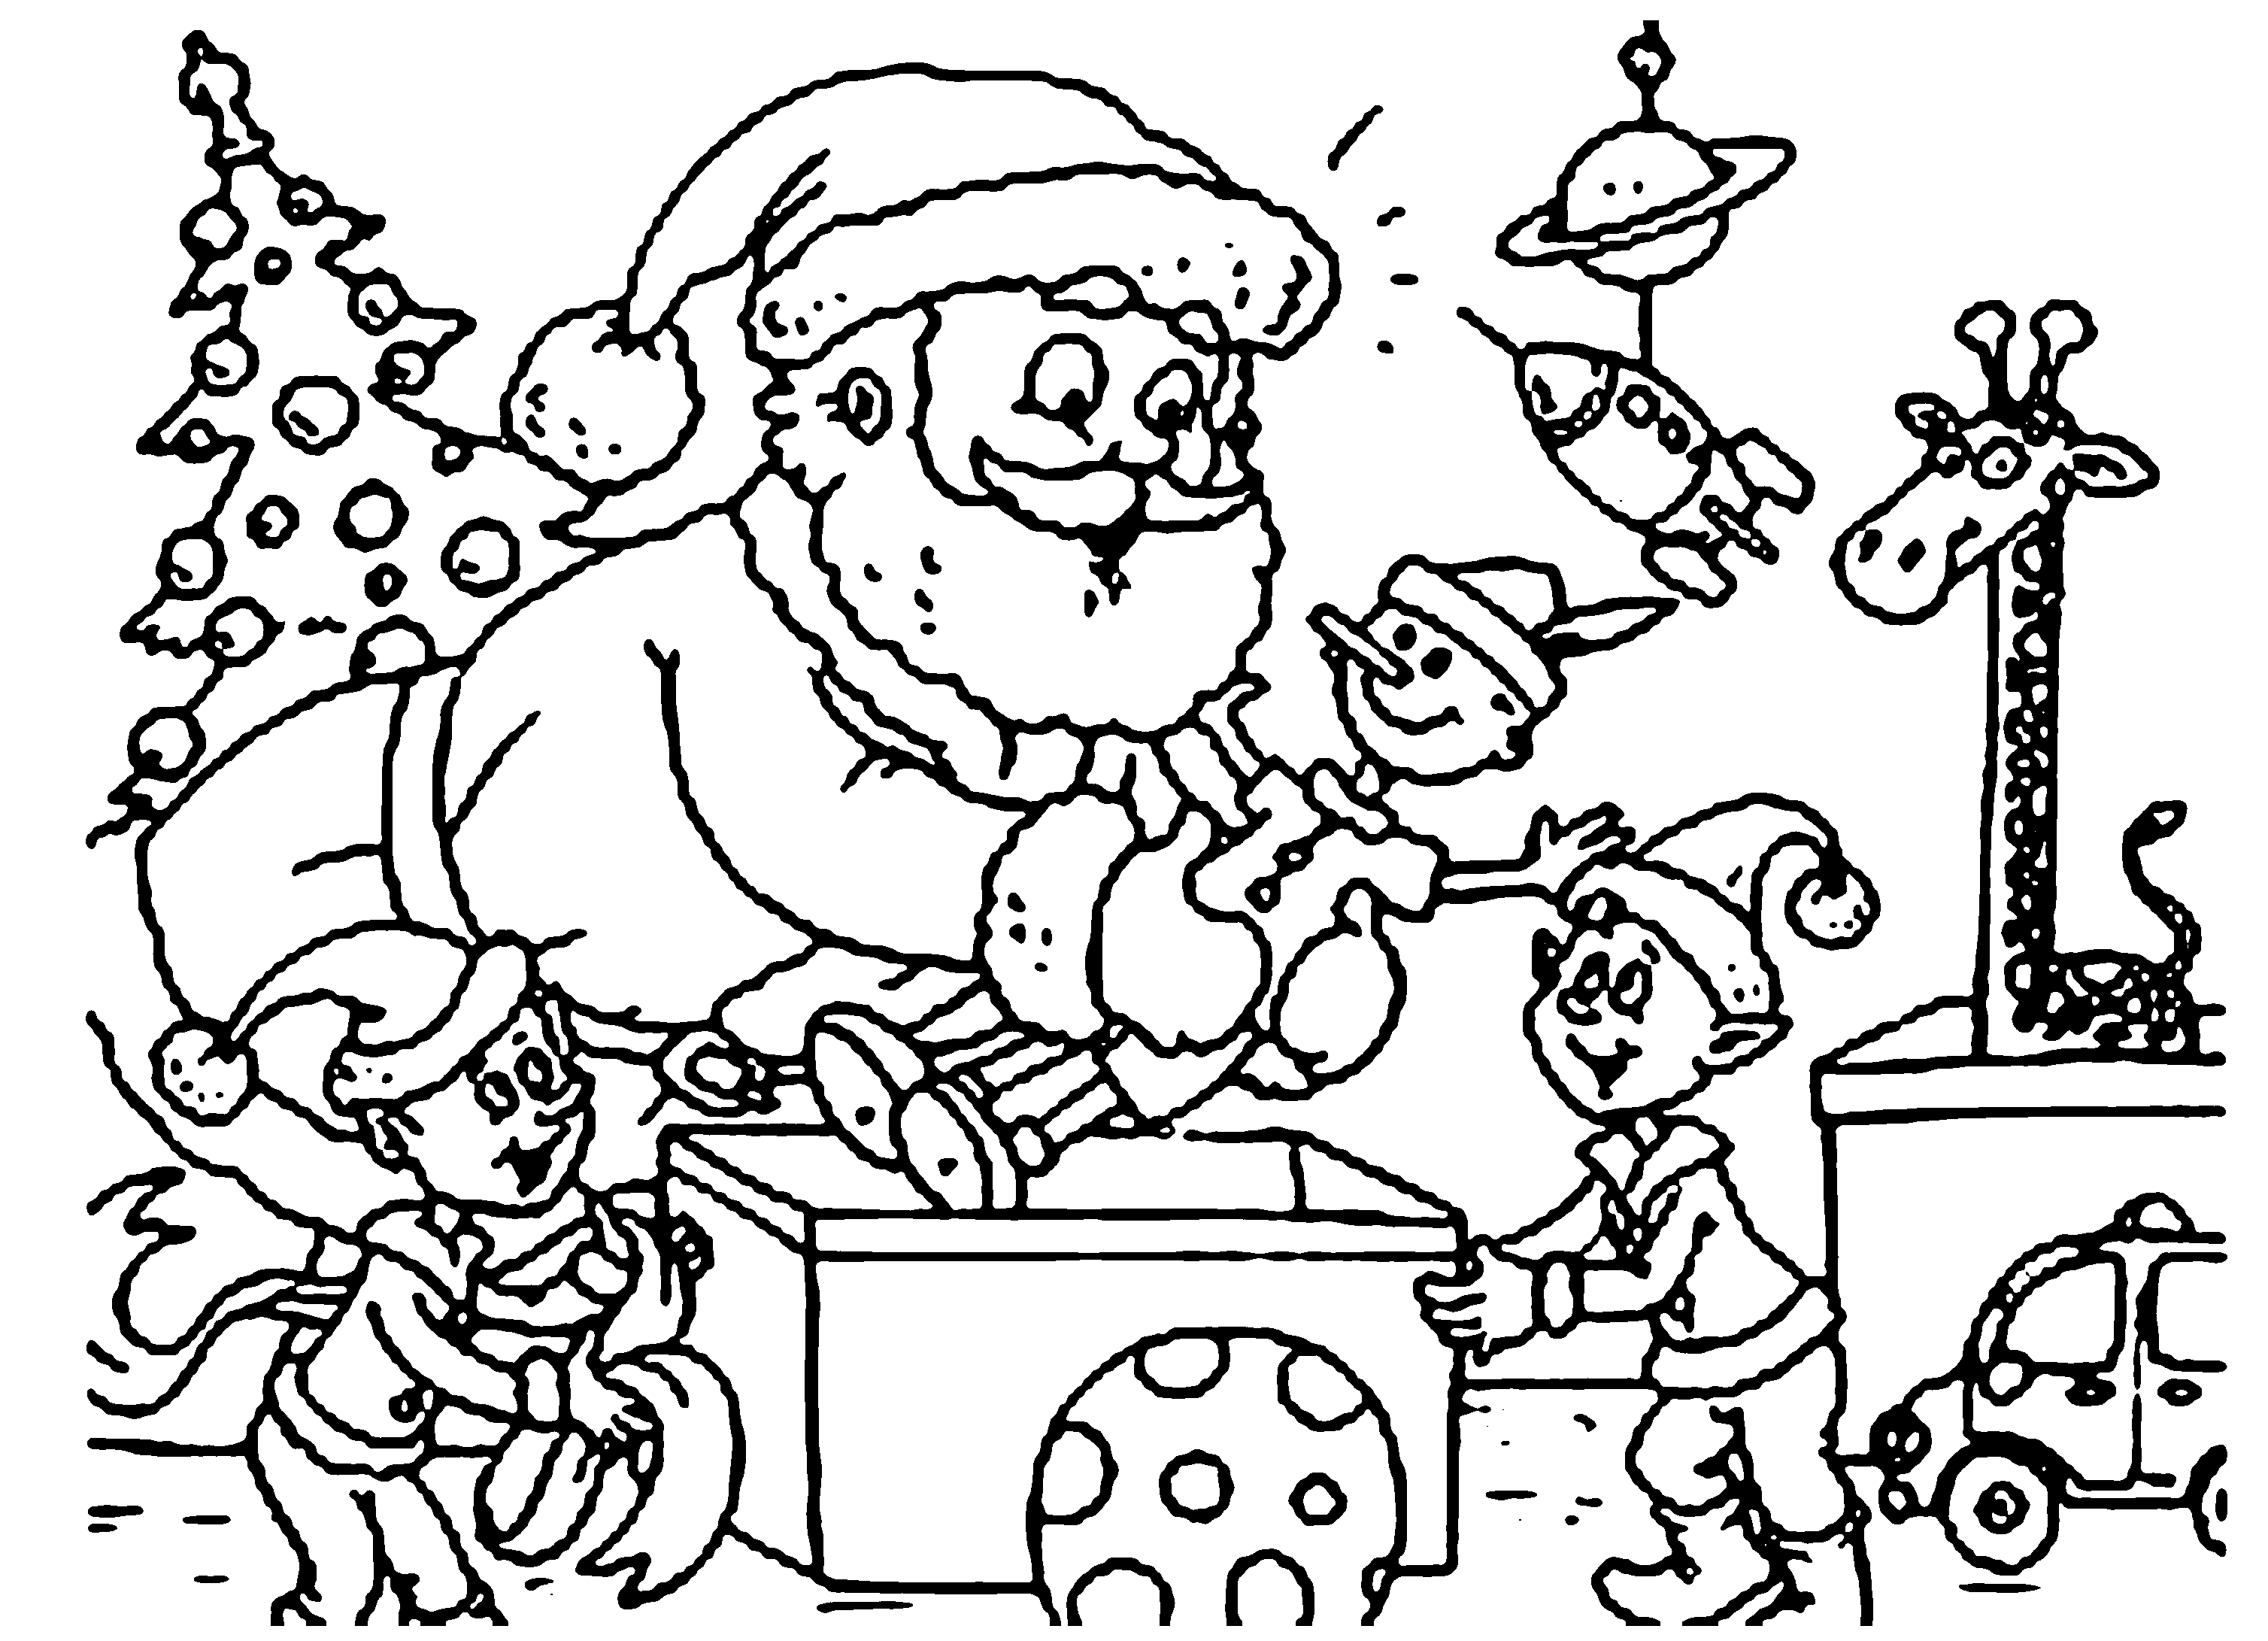 Free coloring pages to print christmas - Coloring Pages Christmas Free Printable Free Coloring Pages